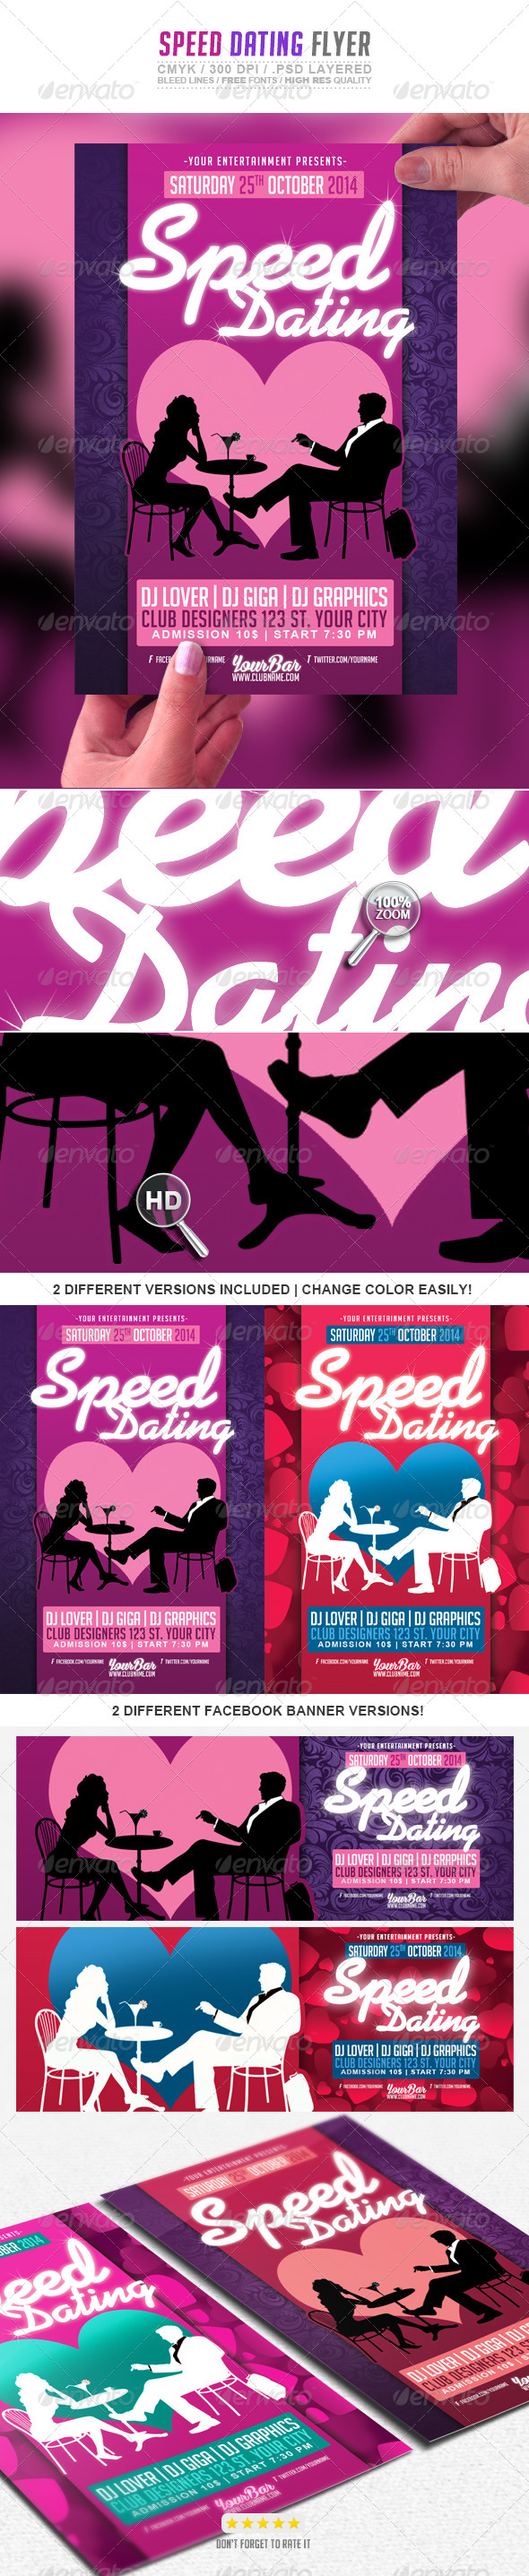 speed dating flyer templates Flyer templates (2 template designs) speed dating theme ideas (ebook) top 50 ice breaker questions to share with your speed daters consultation your kit includes a 15 minute phone consultation use this time to speak with our speed dating event experts about hosting your singles event and tips for success email support for using the kit.